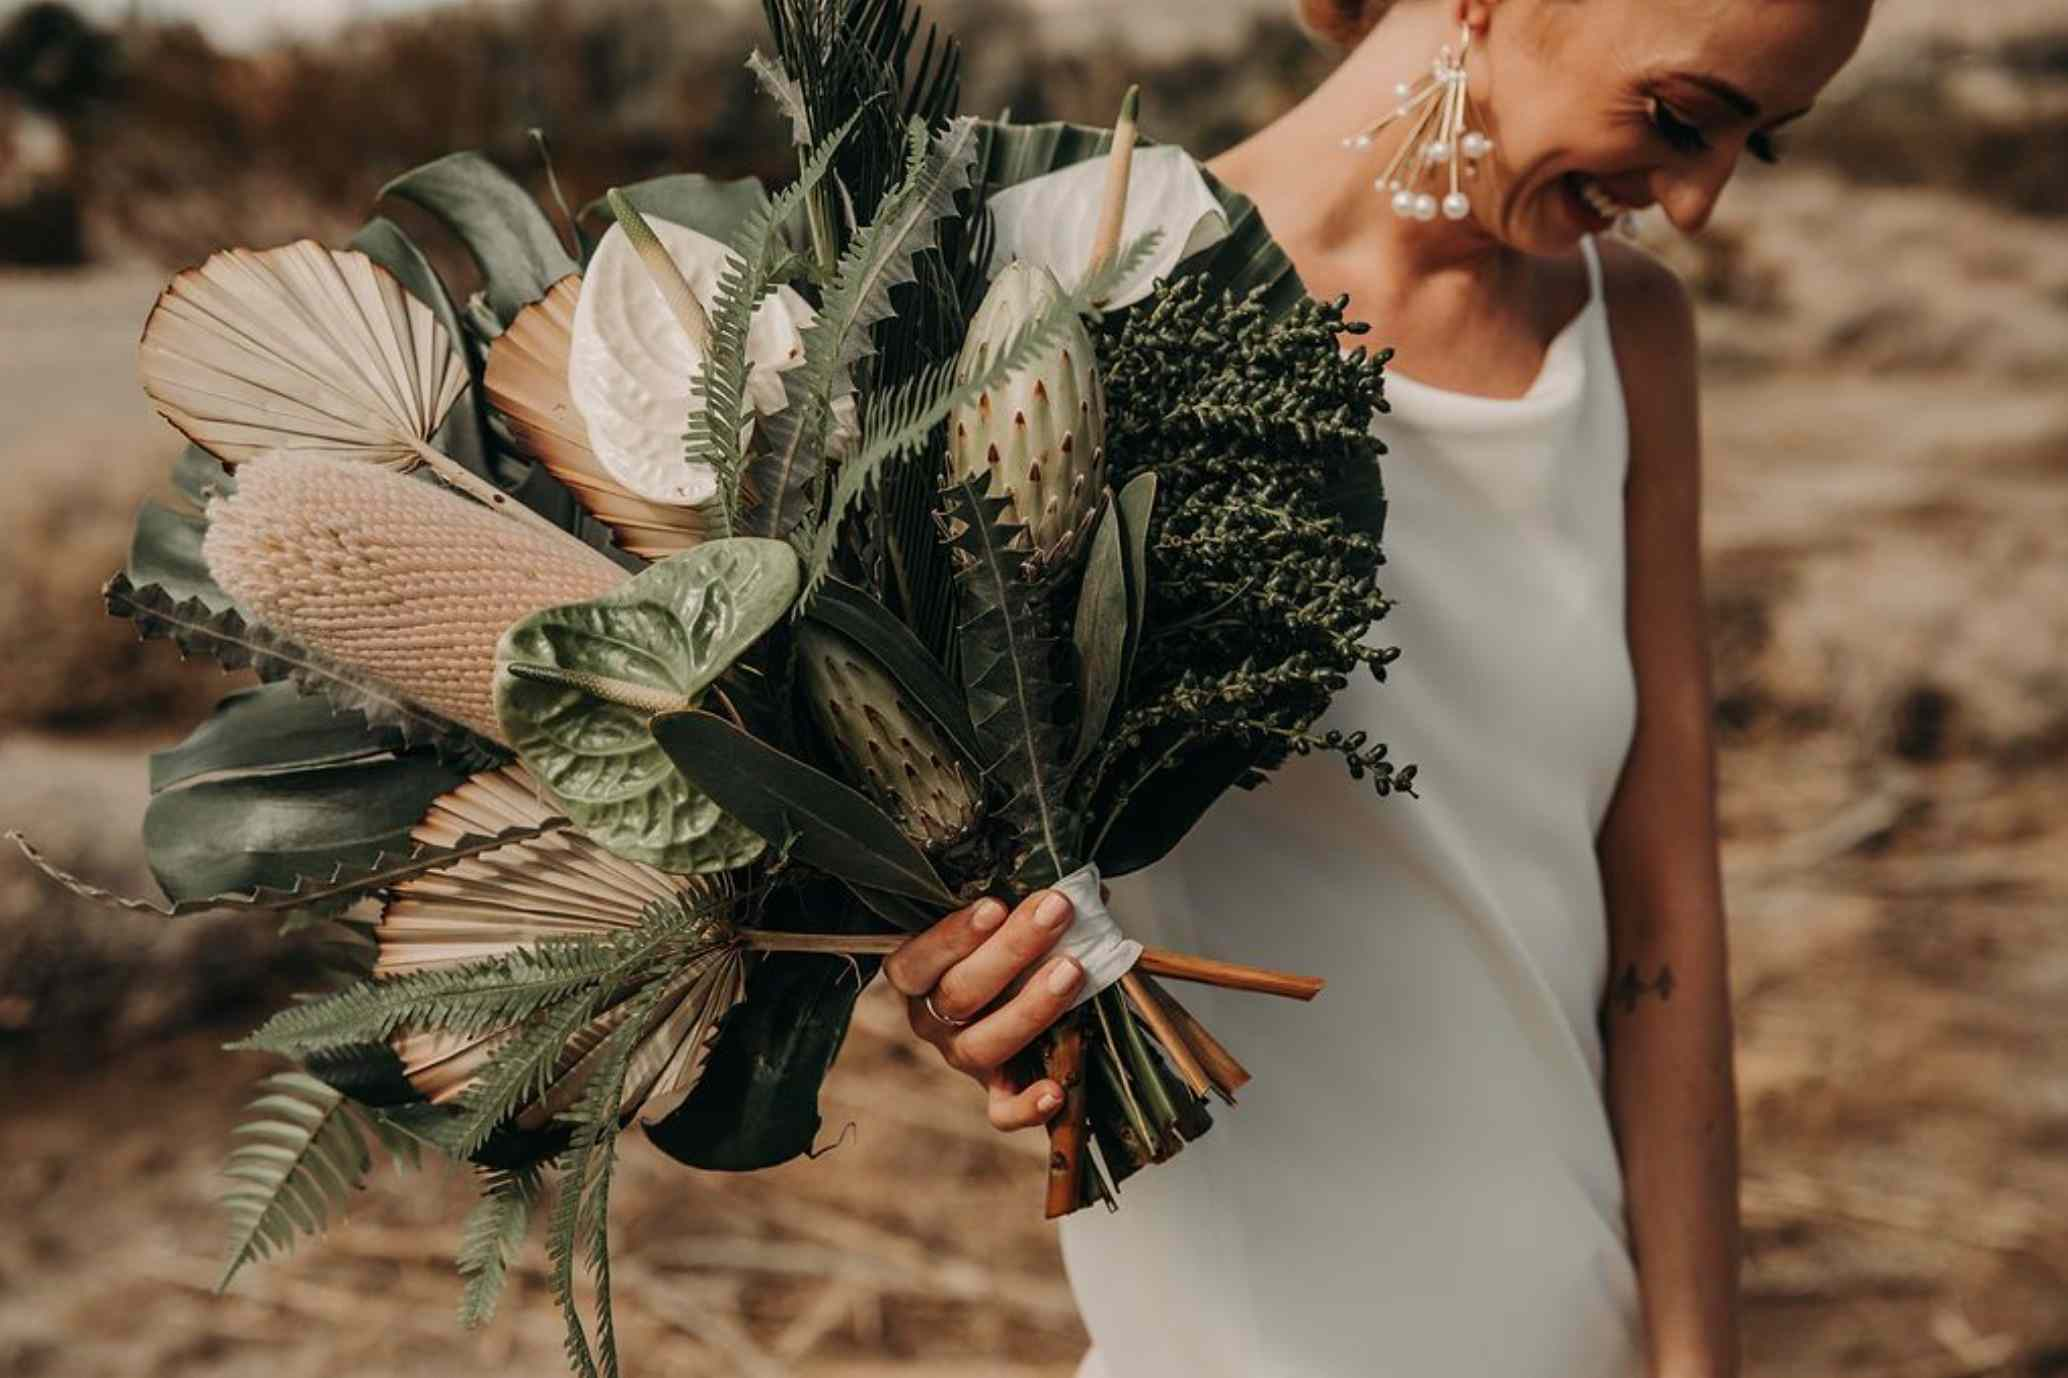 Tropical-inspired bouquet with giant monstera leaves, palms, and anthurium.